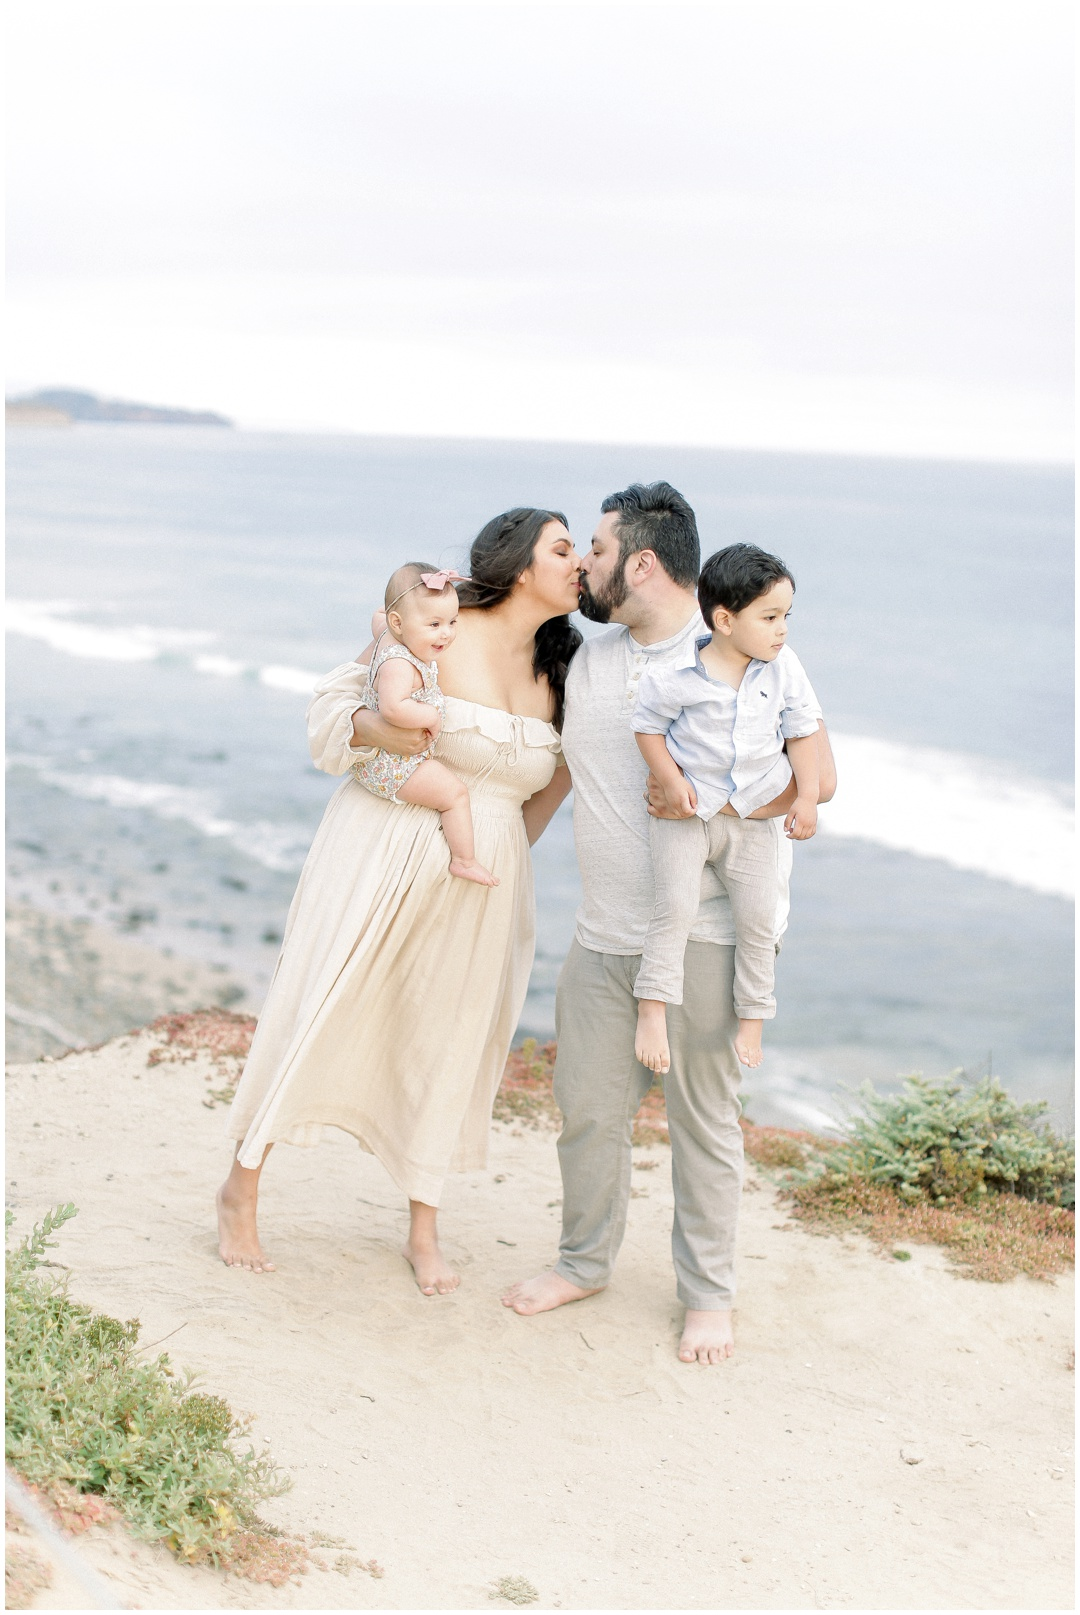 Newport_Beach_Newborn_Light_Airy_Natural_Photographer_Newport_Beach_Photographer_Orange_County_Family_Photographer_Cori_Kleckner_Photography_Huntington_Beach_Photographer_Family_OC_Newborn_Natalie_Nunez_Thomas_Nunez_Natalie_Roca_Rosh_Nunez_Family_3548.jpg